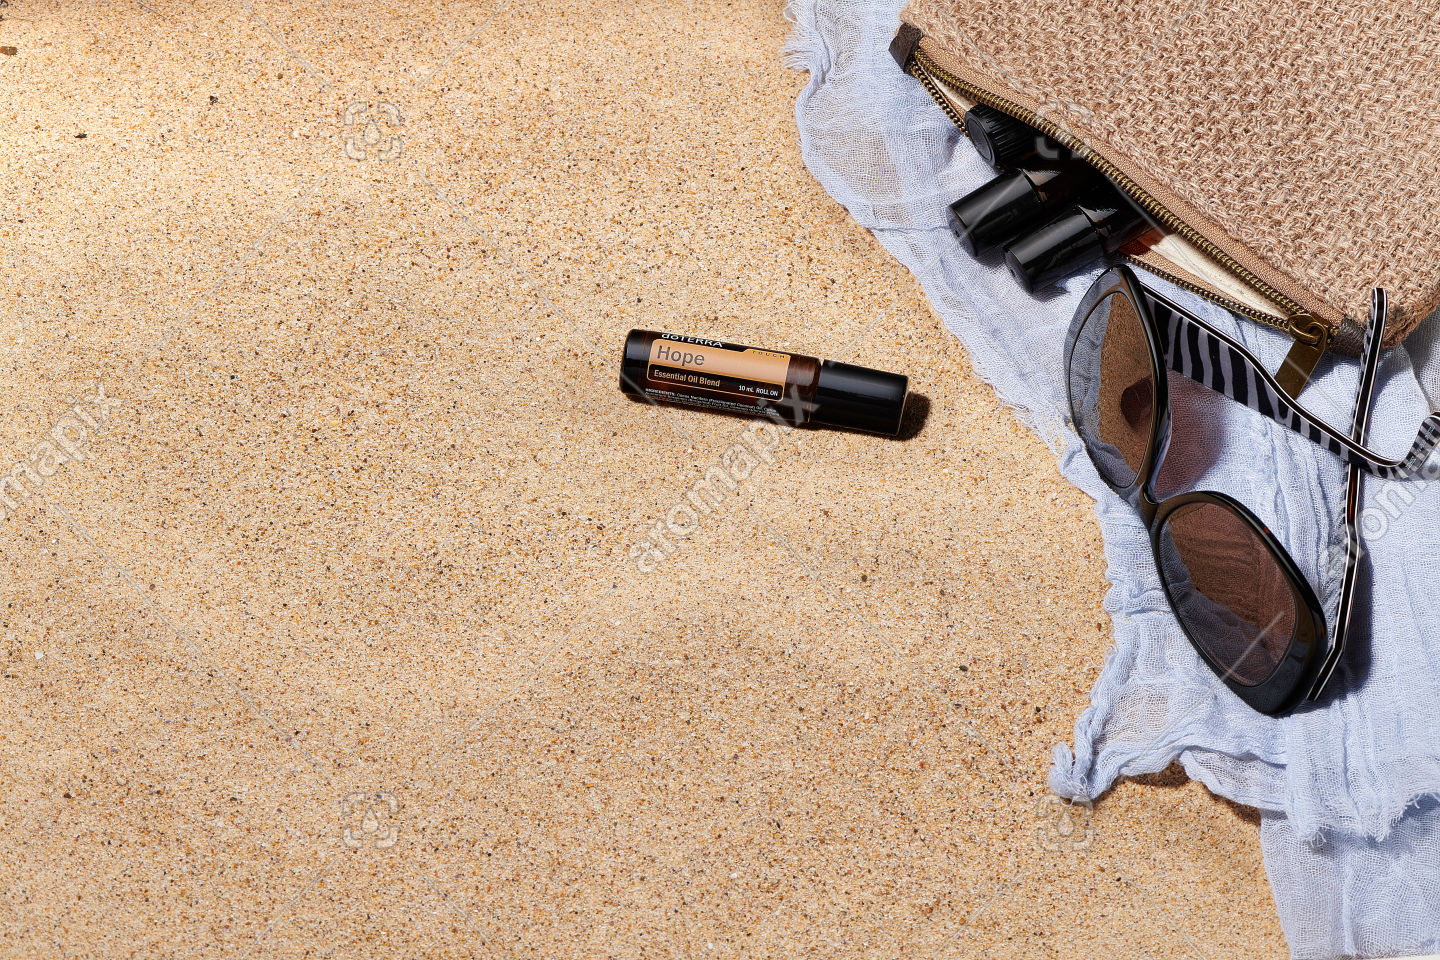 doTERRA Hope Touch with accessories on sand